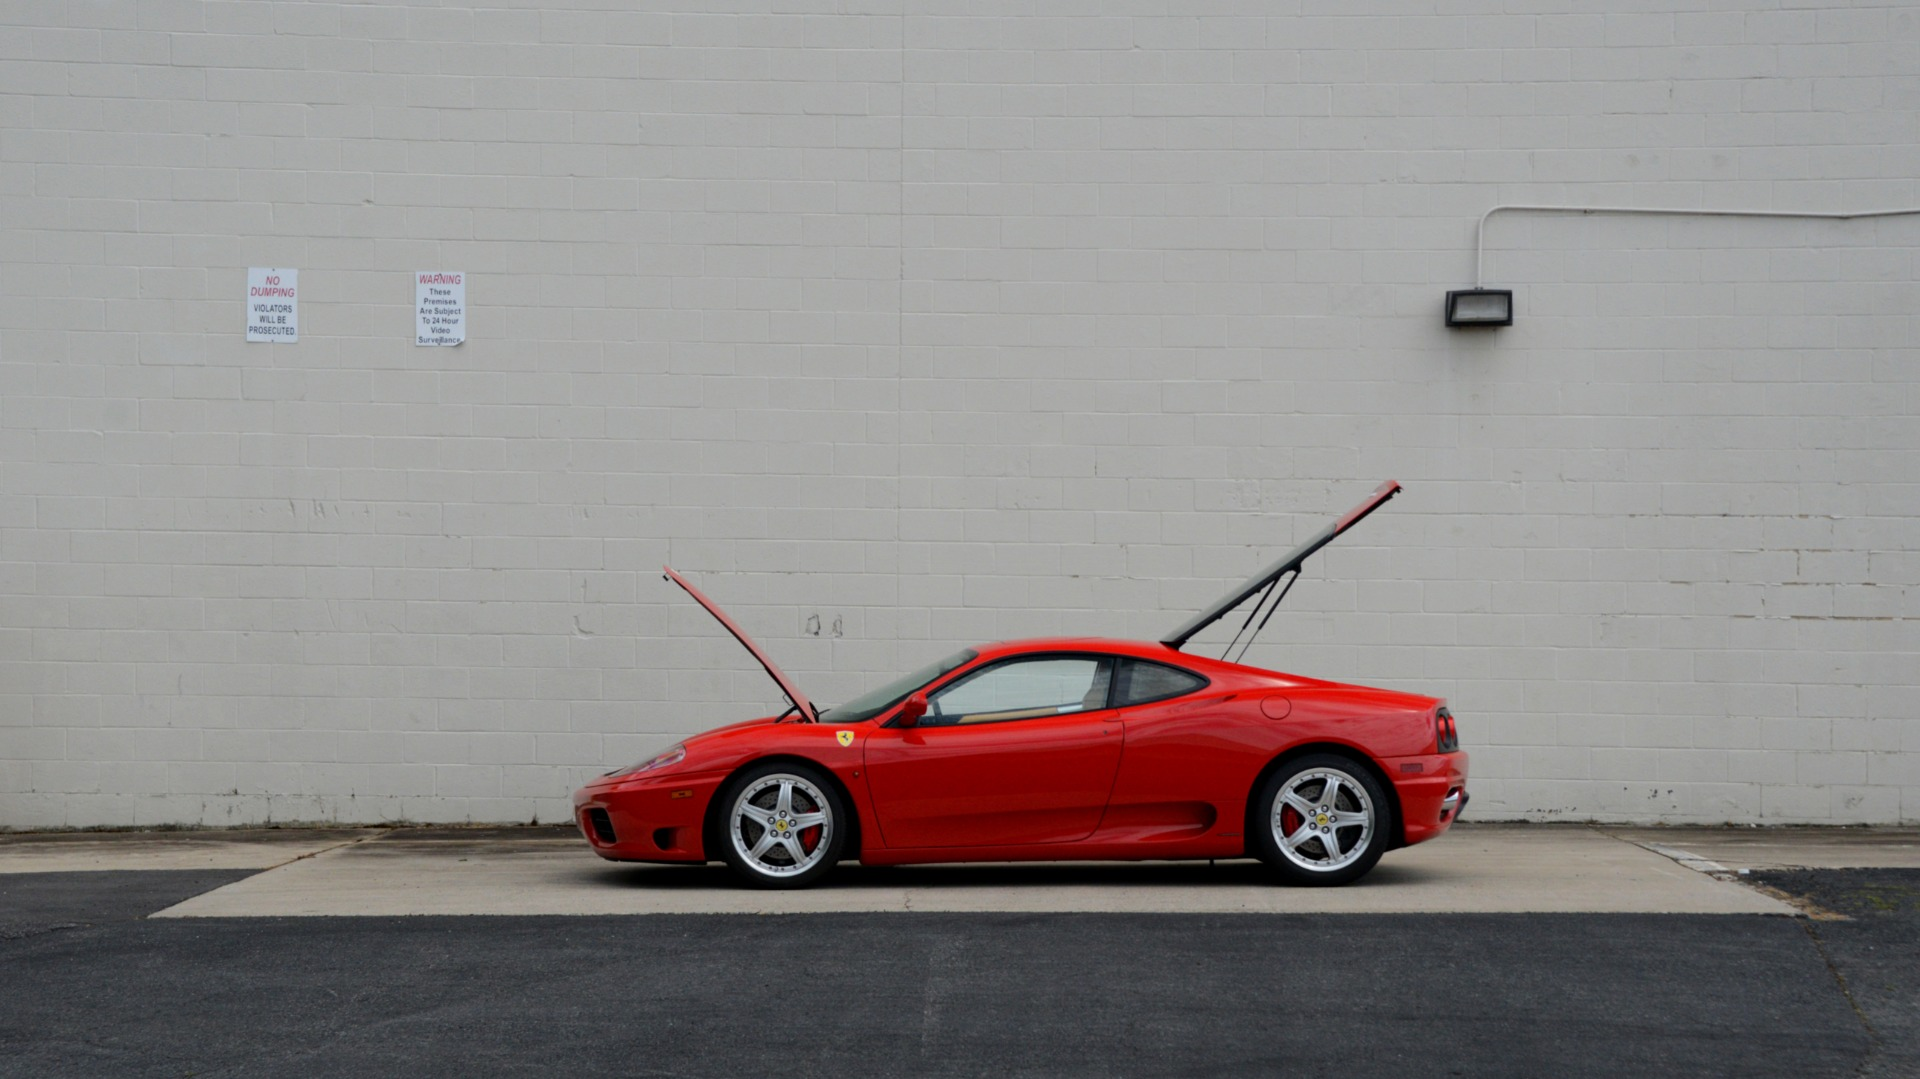 Used 2004 Ferrari 360 MODENA COUPE / GATED 6-SPD MANUAL / SUNROOF / LOW MILES for sale Sold at Formula Imports in Charlotte NC 28227 15